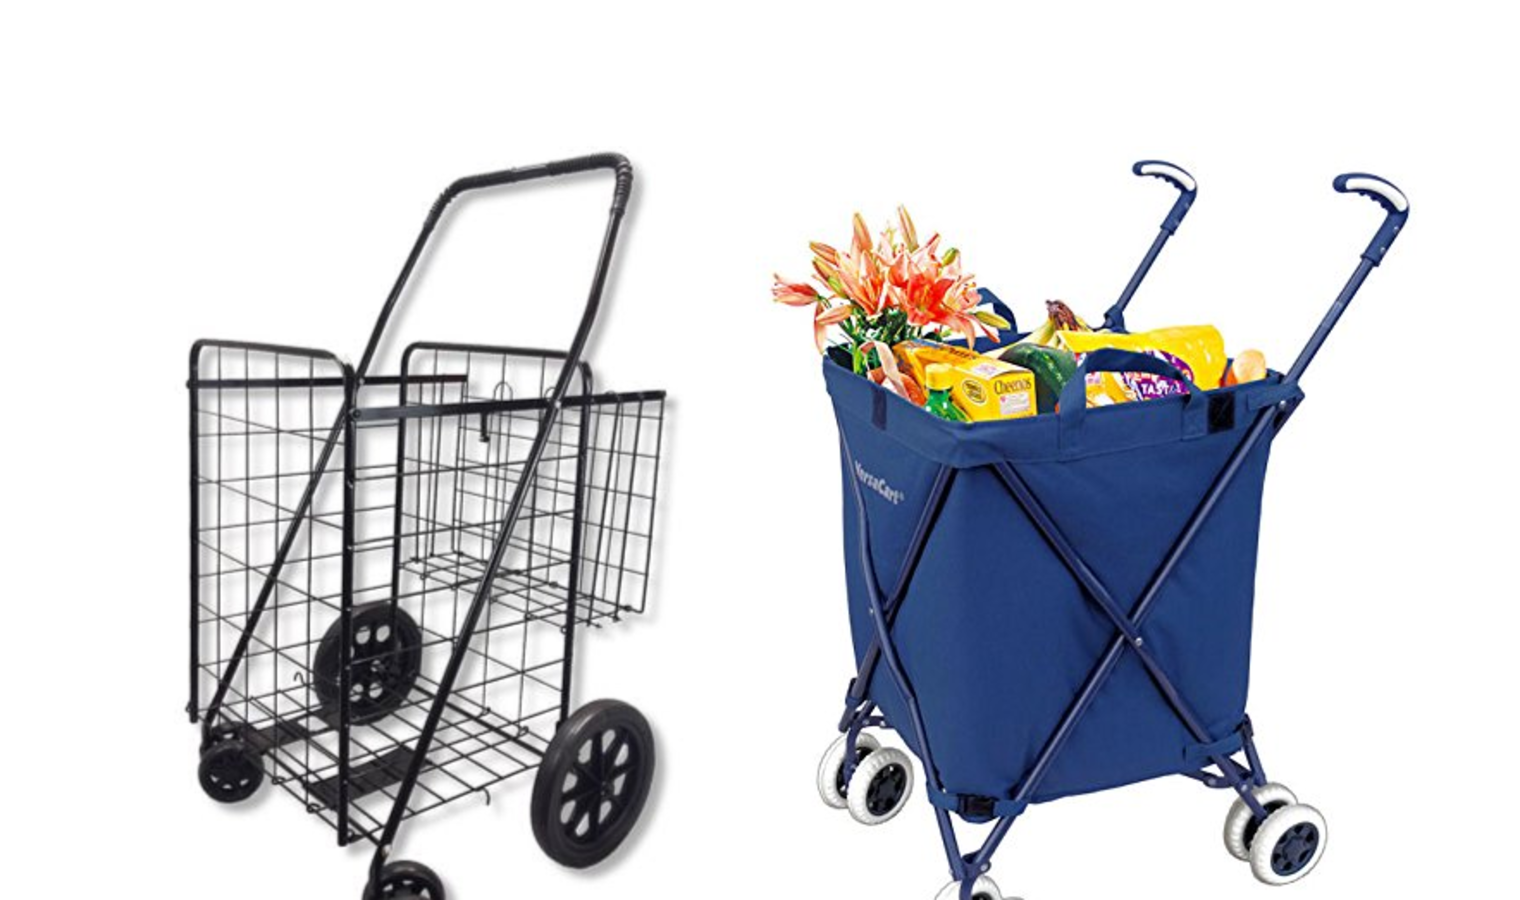 Heavy Duty Folding Shopping Carts for Groceries and Laundry